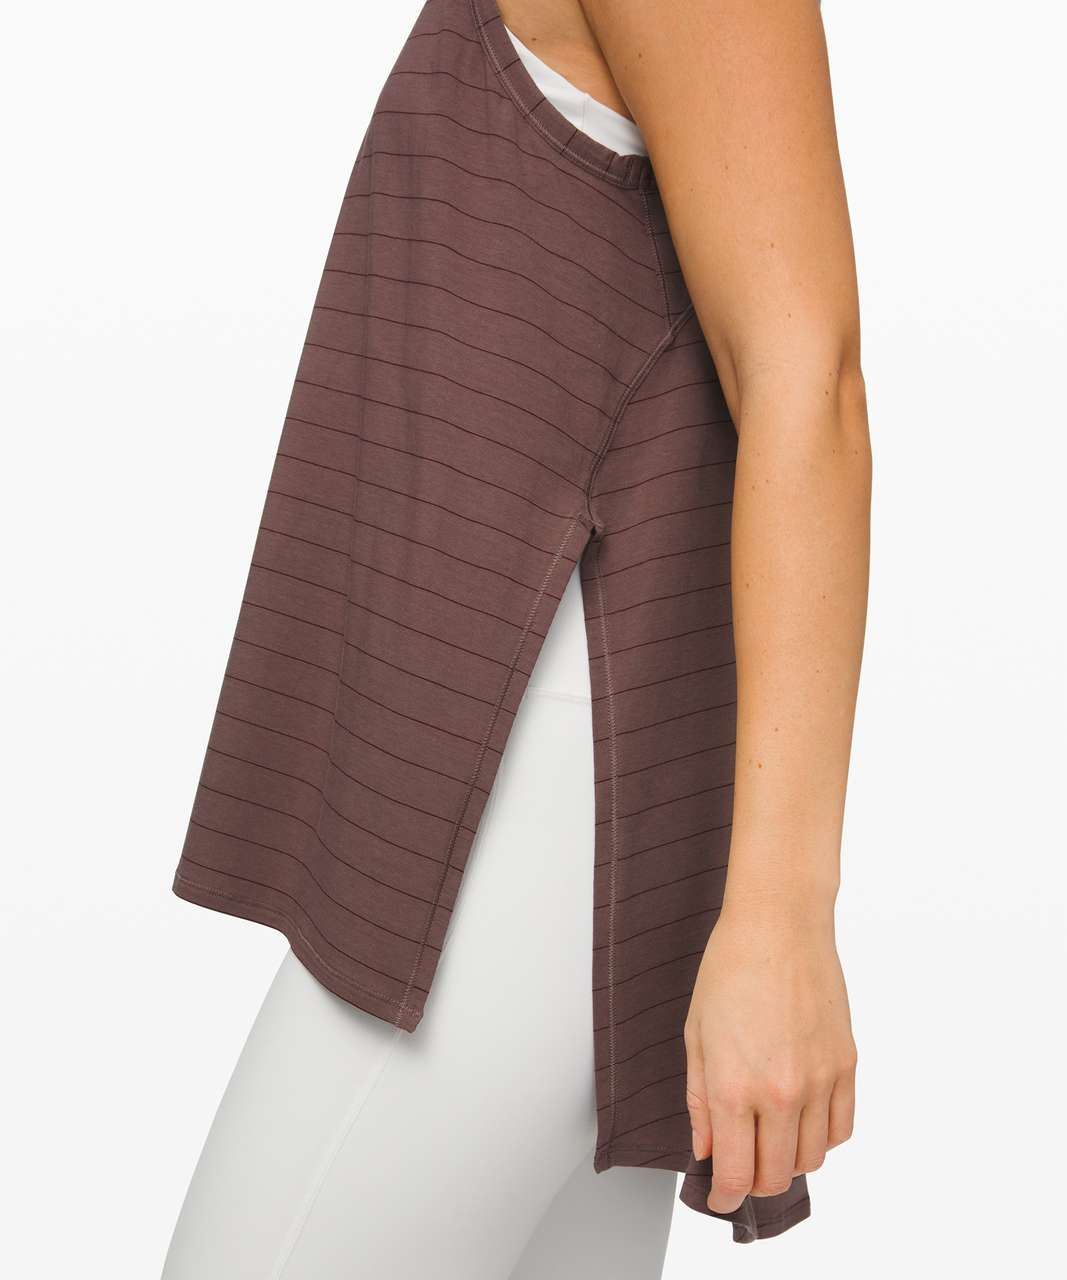 Lululemon Long for Length Tank - Short Serve Stripe Antique Bark Garnet